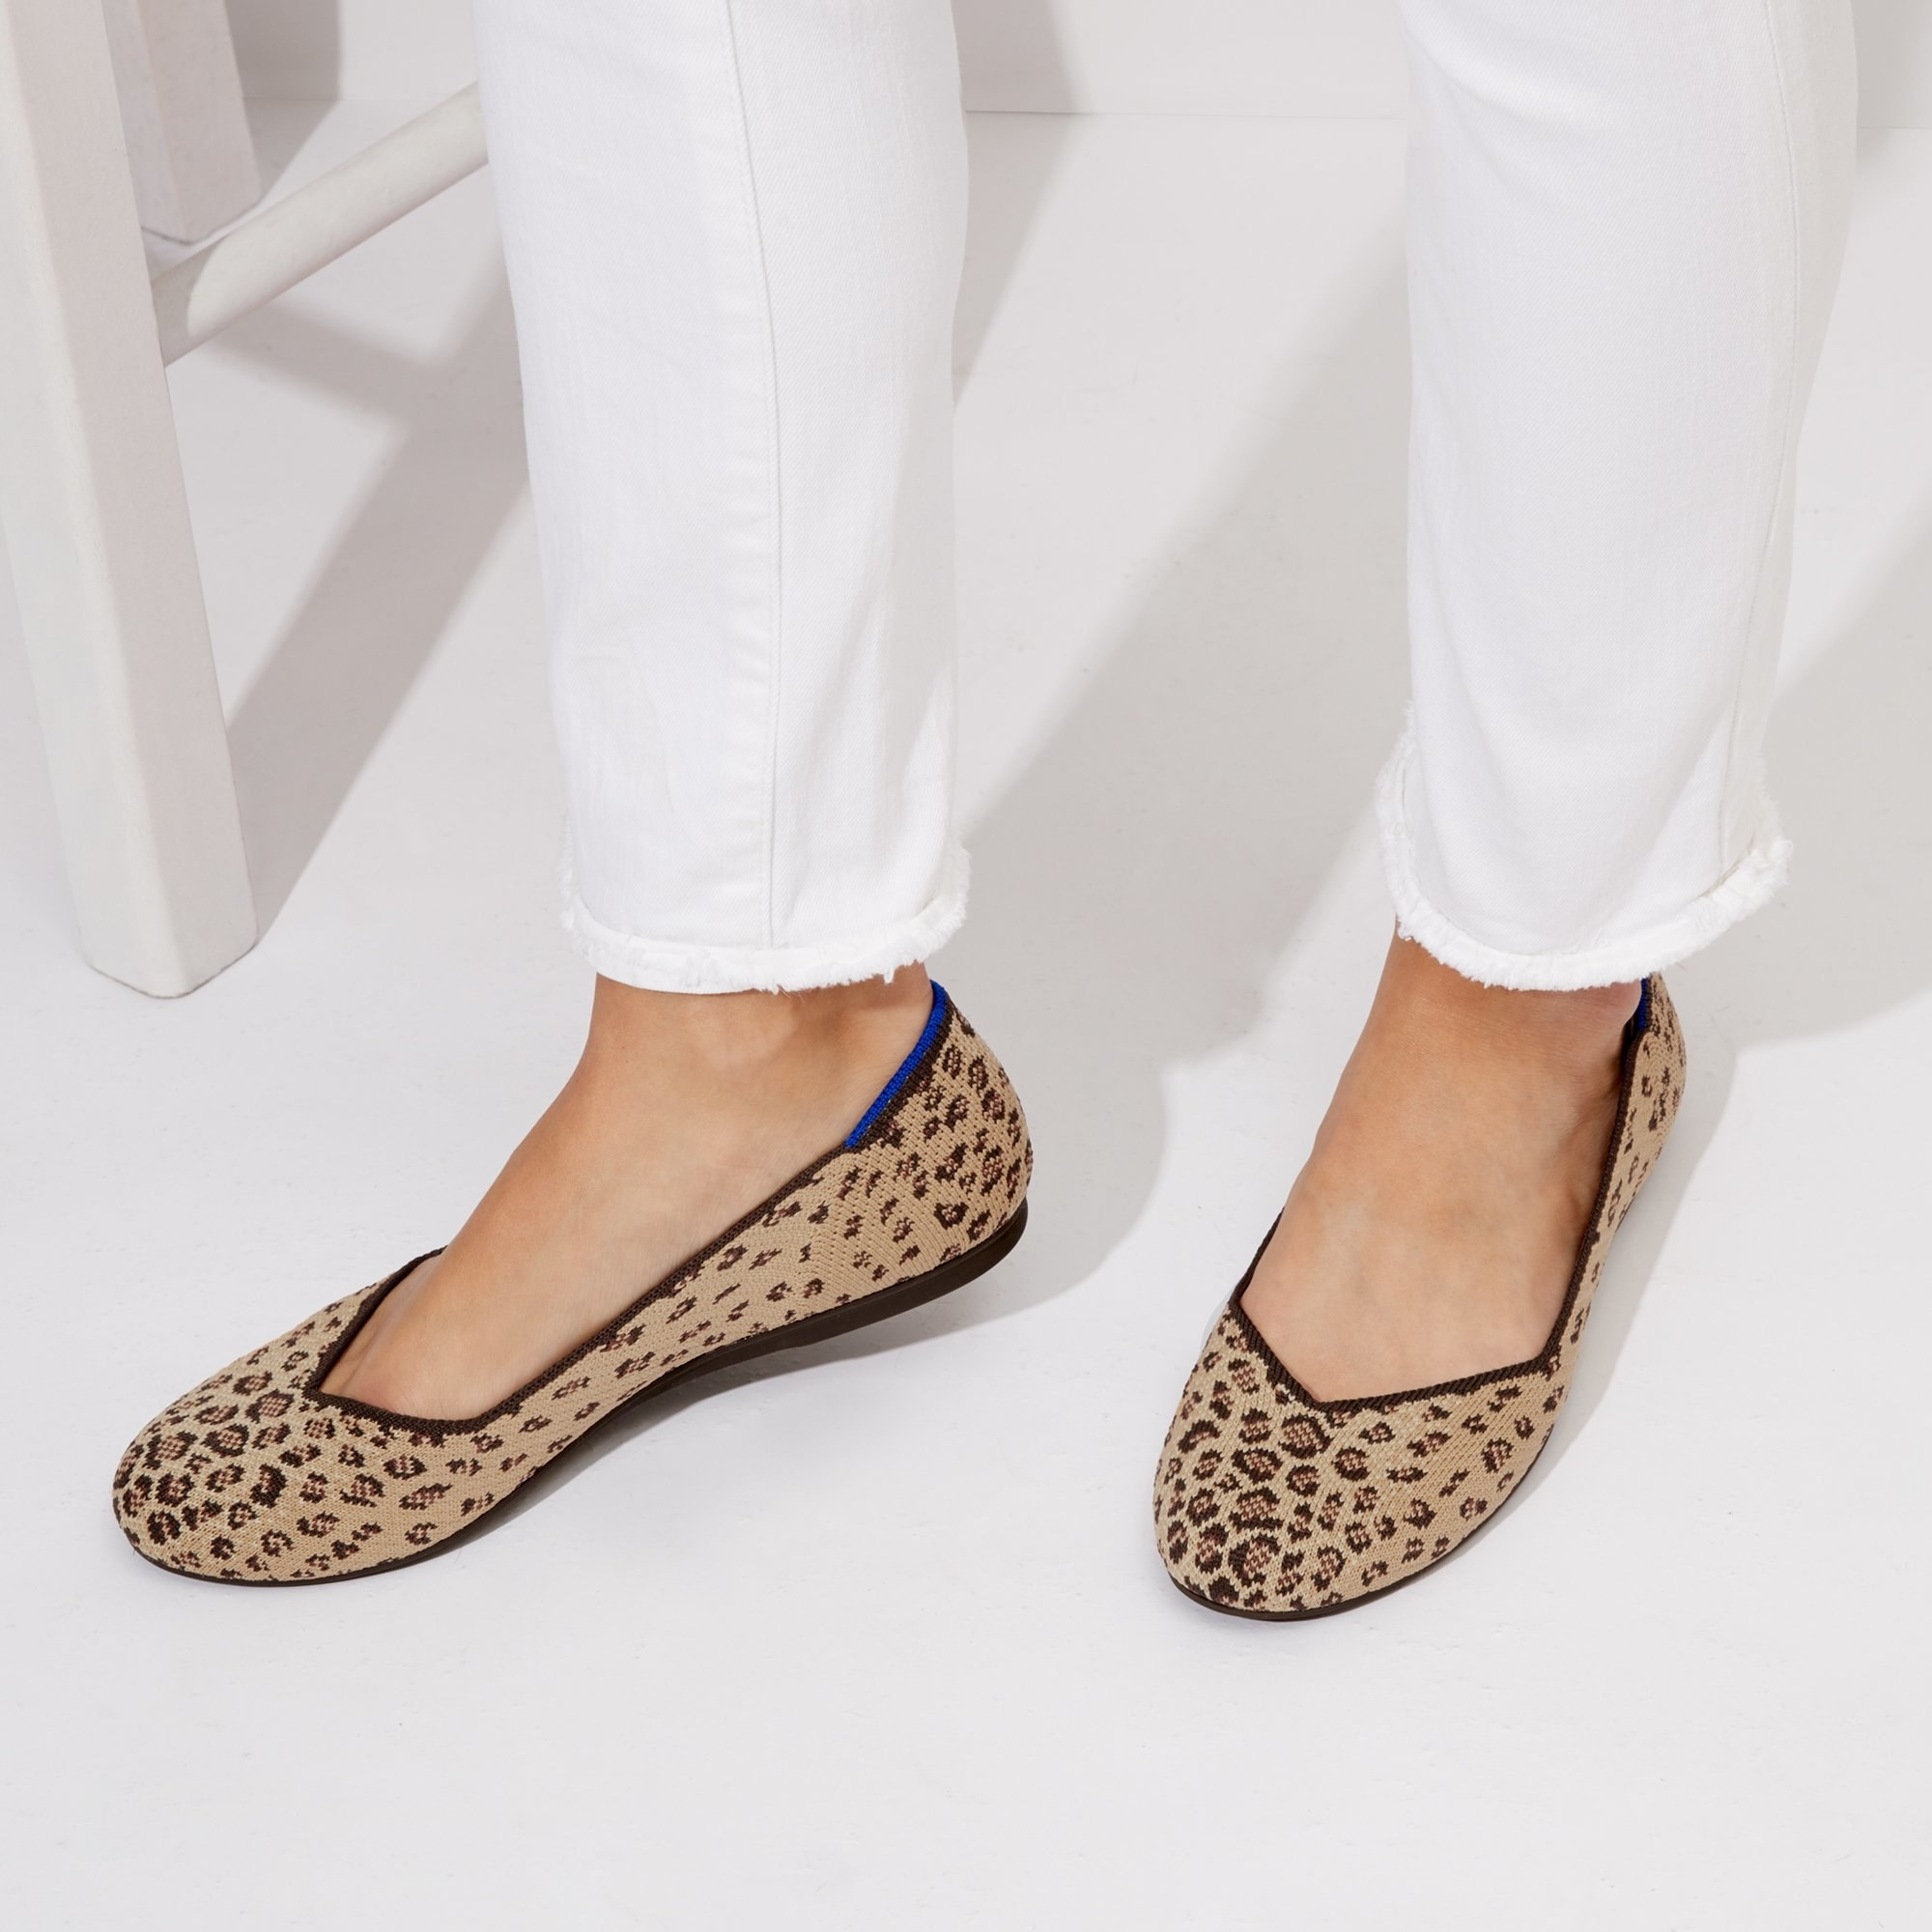 a pair of flats with leopard print